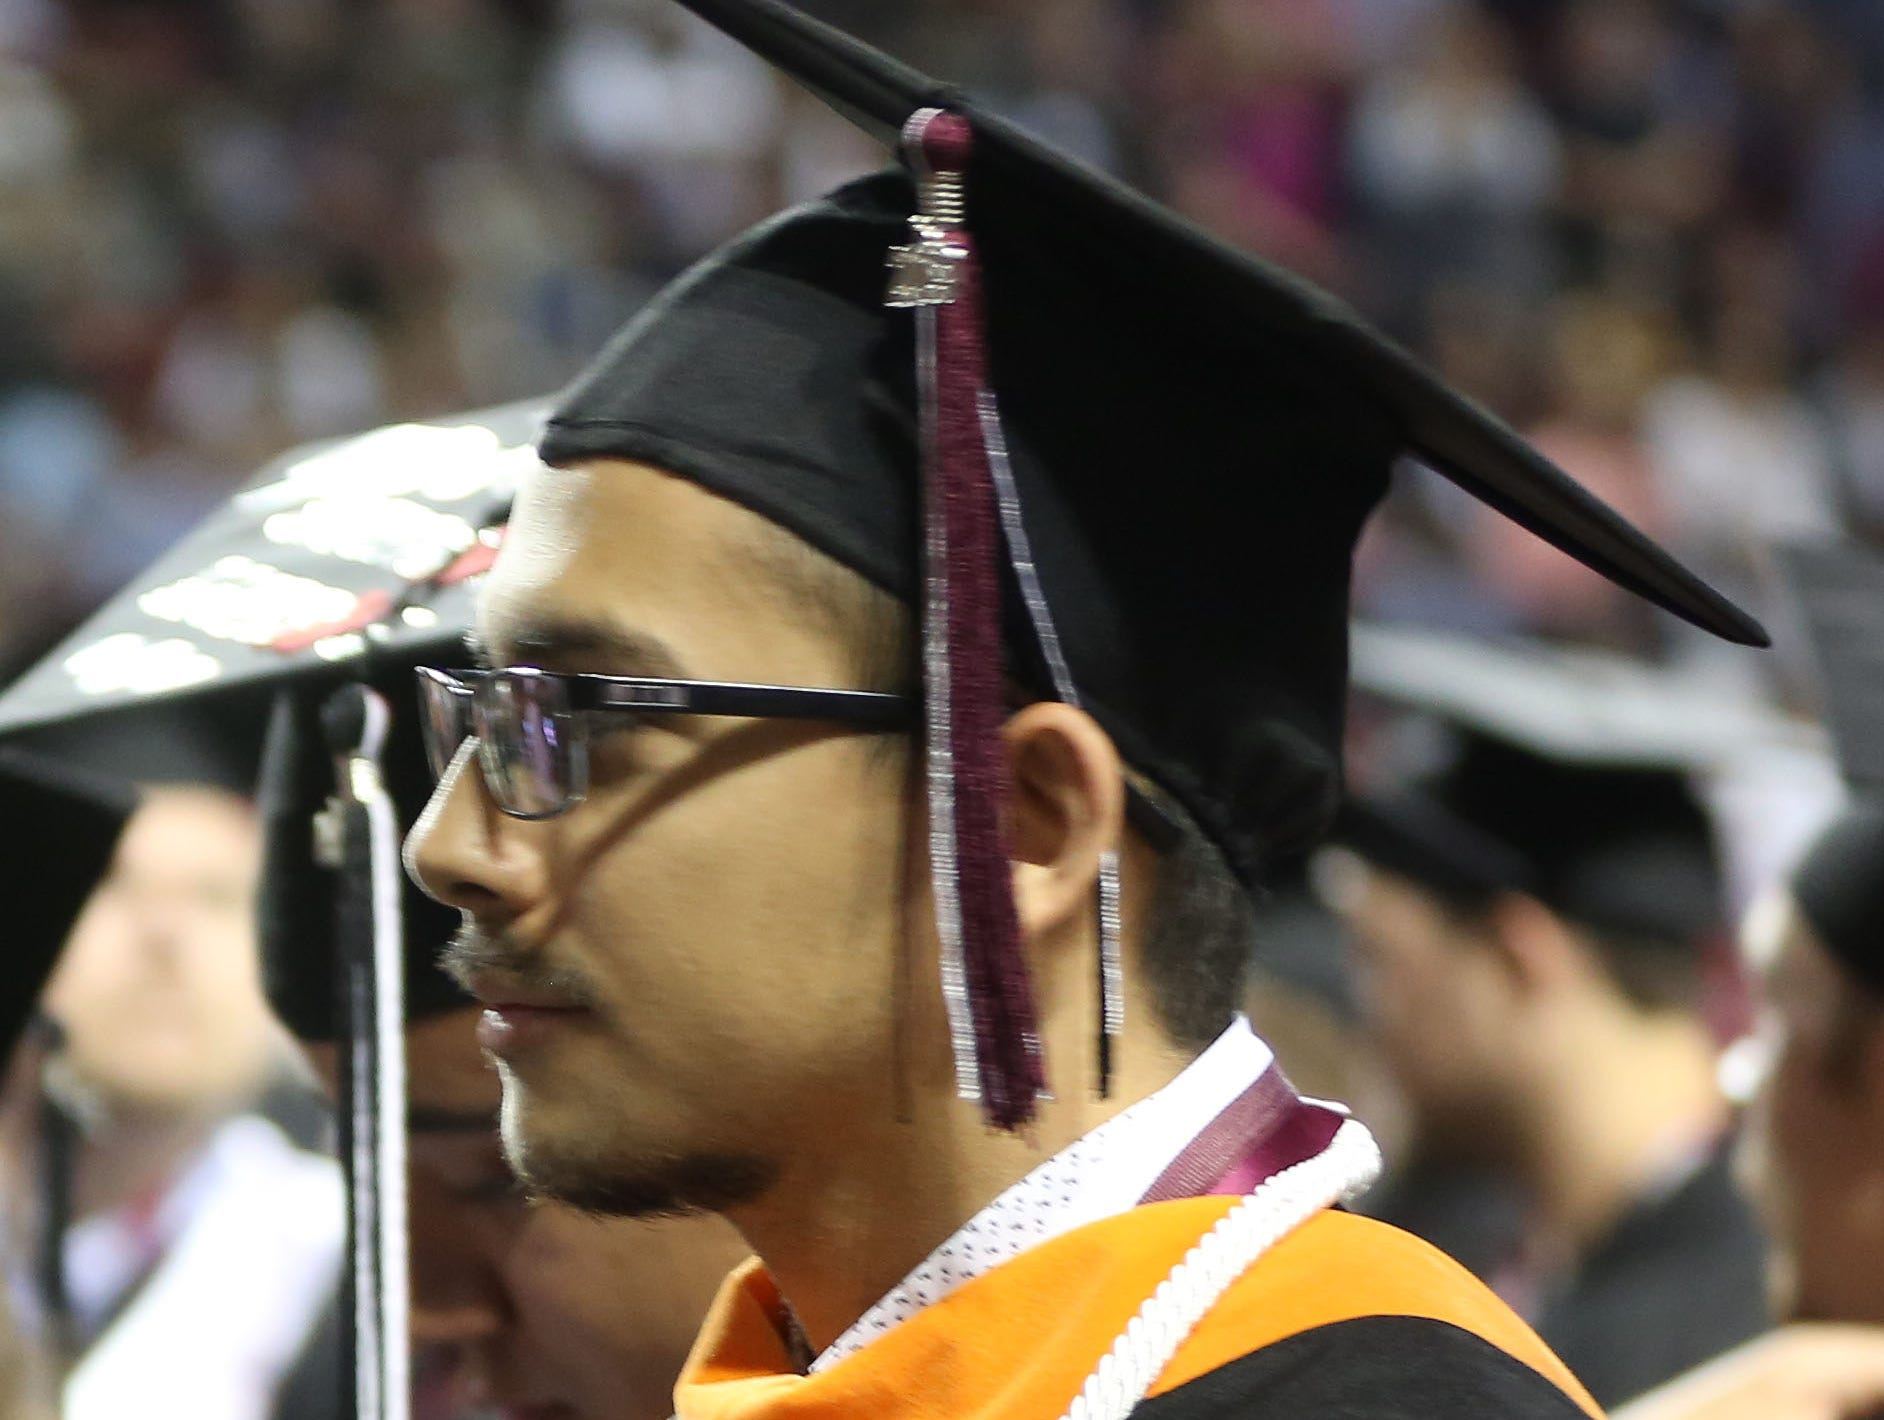 A New Mexico State University graduate, waits to exit the building after a morning commencement ceremony, Saturday May 11, 2019.